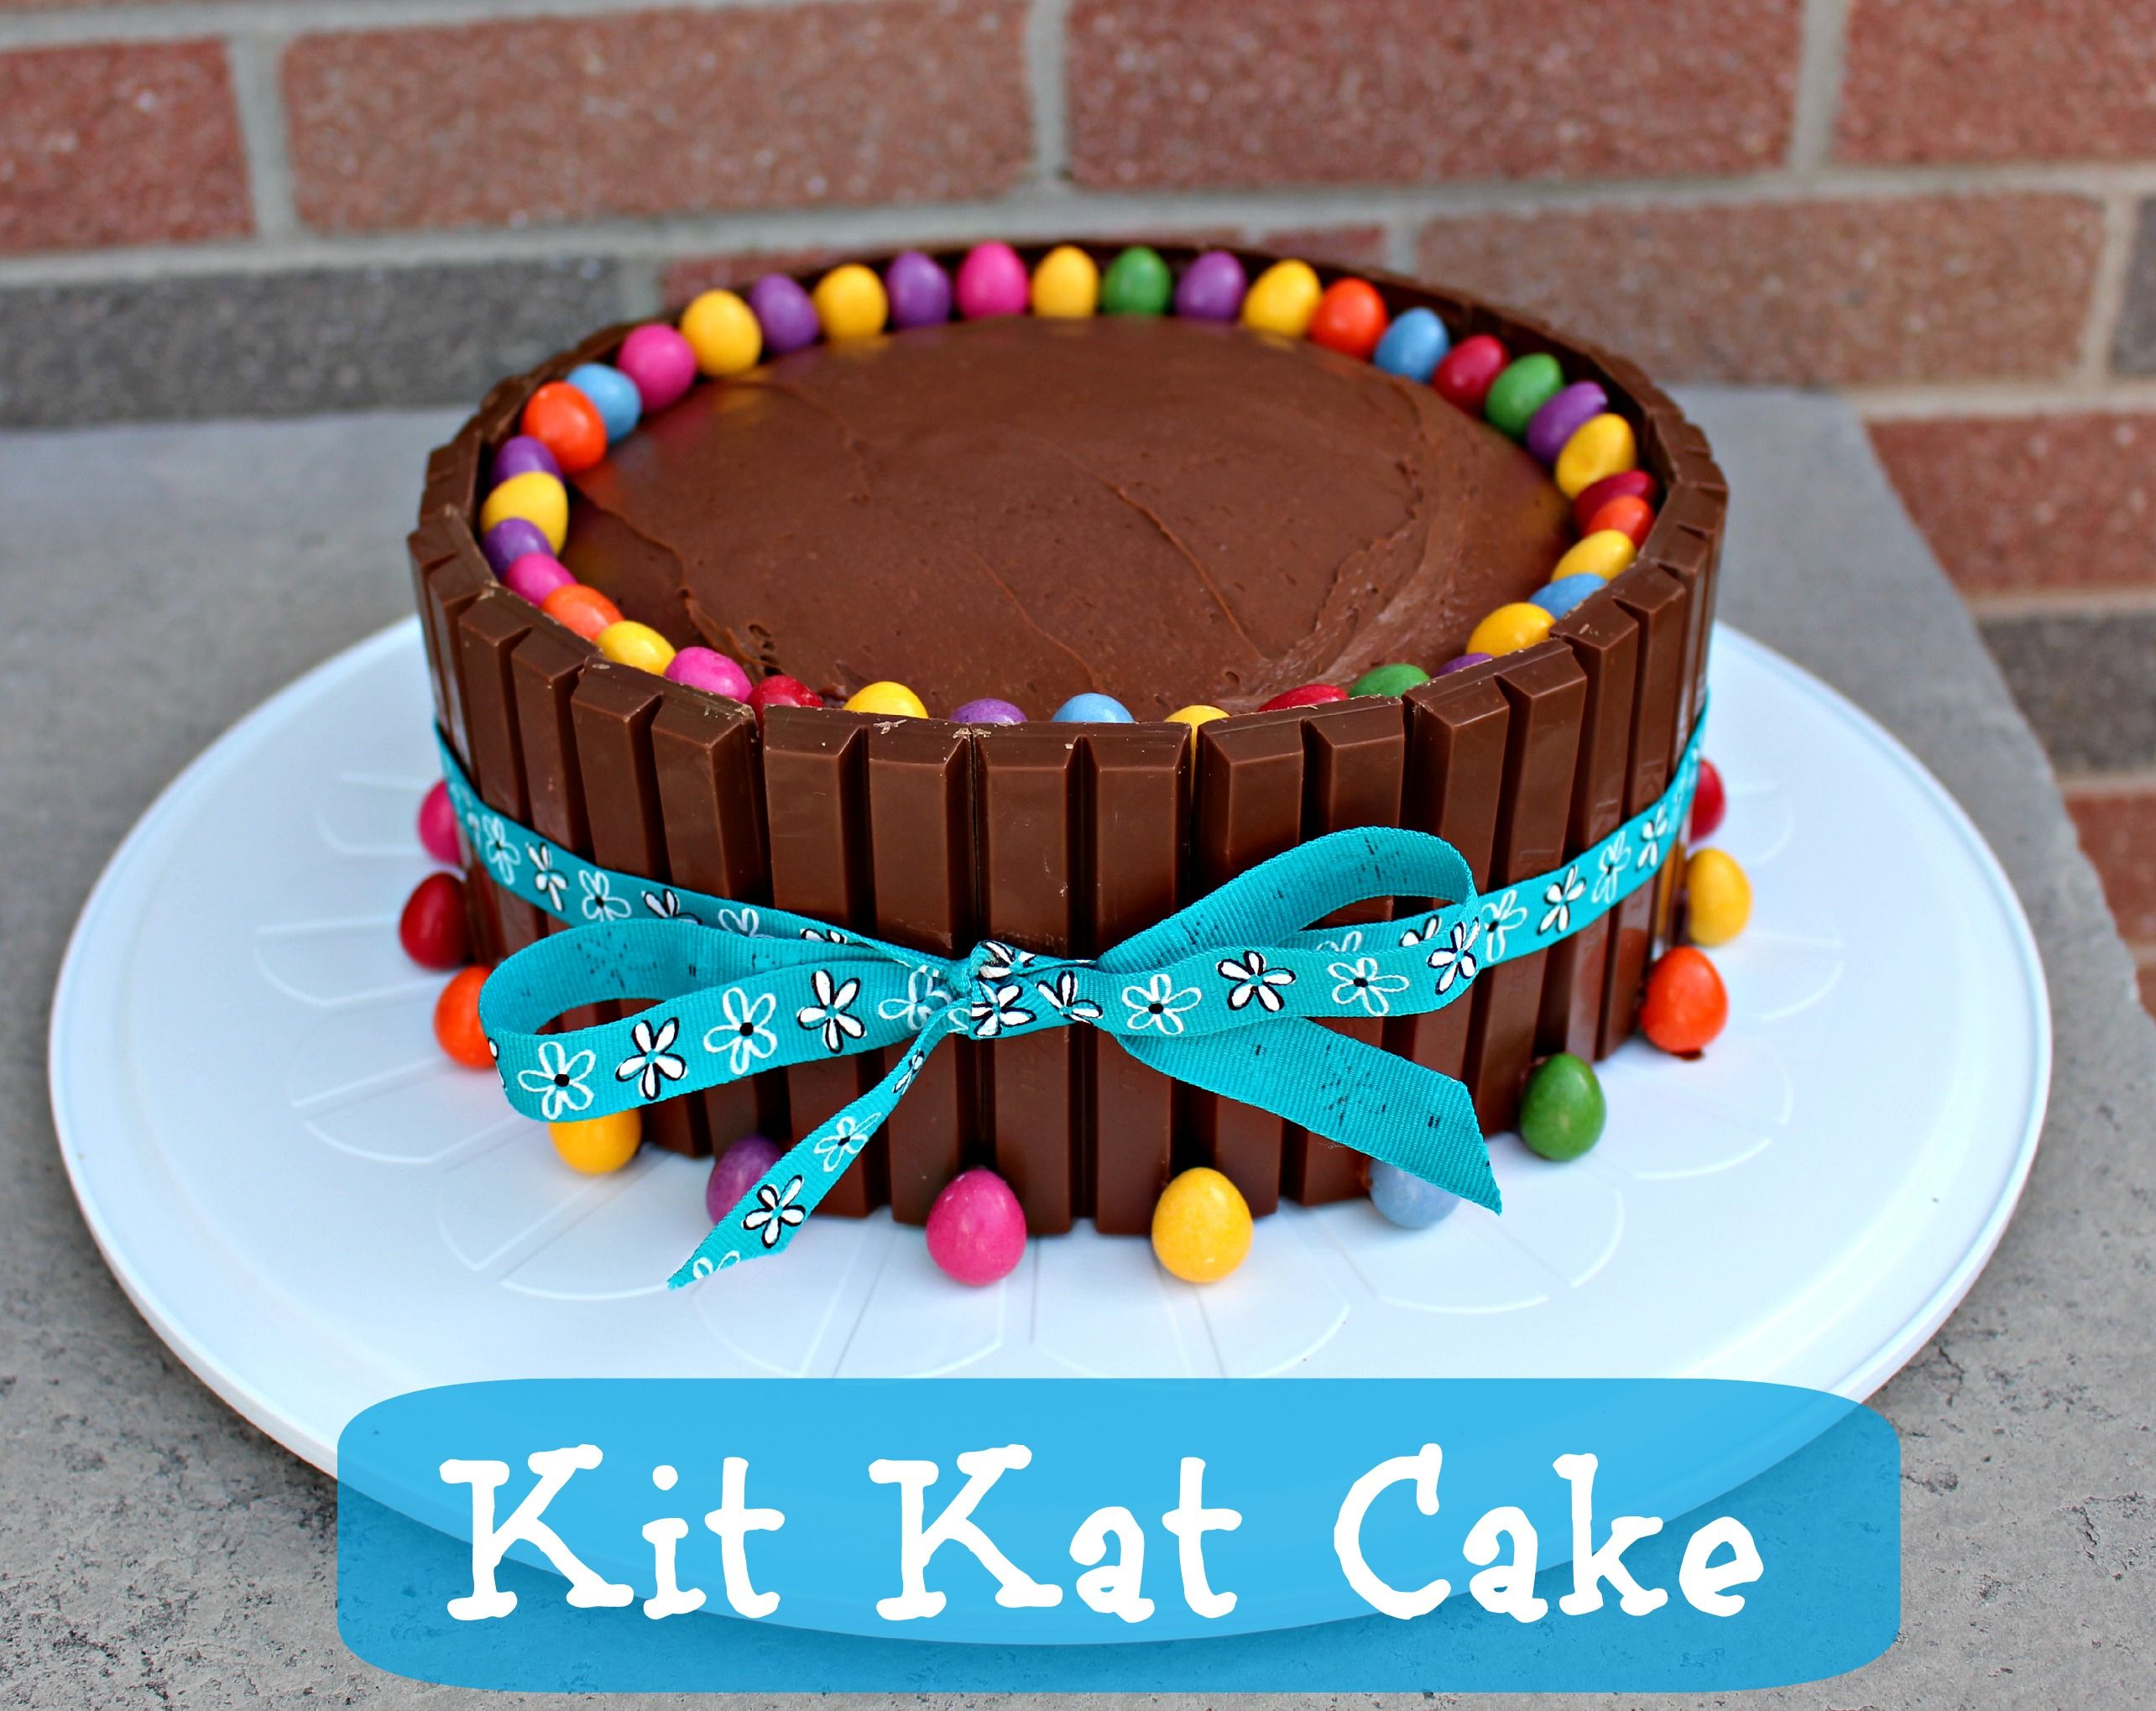 Simple Cake Designs For Girl Birthday : Kit Kat Cake Recipe Cake birthday, Birthday cakes and Teen